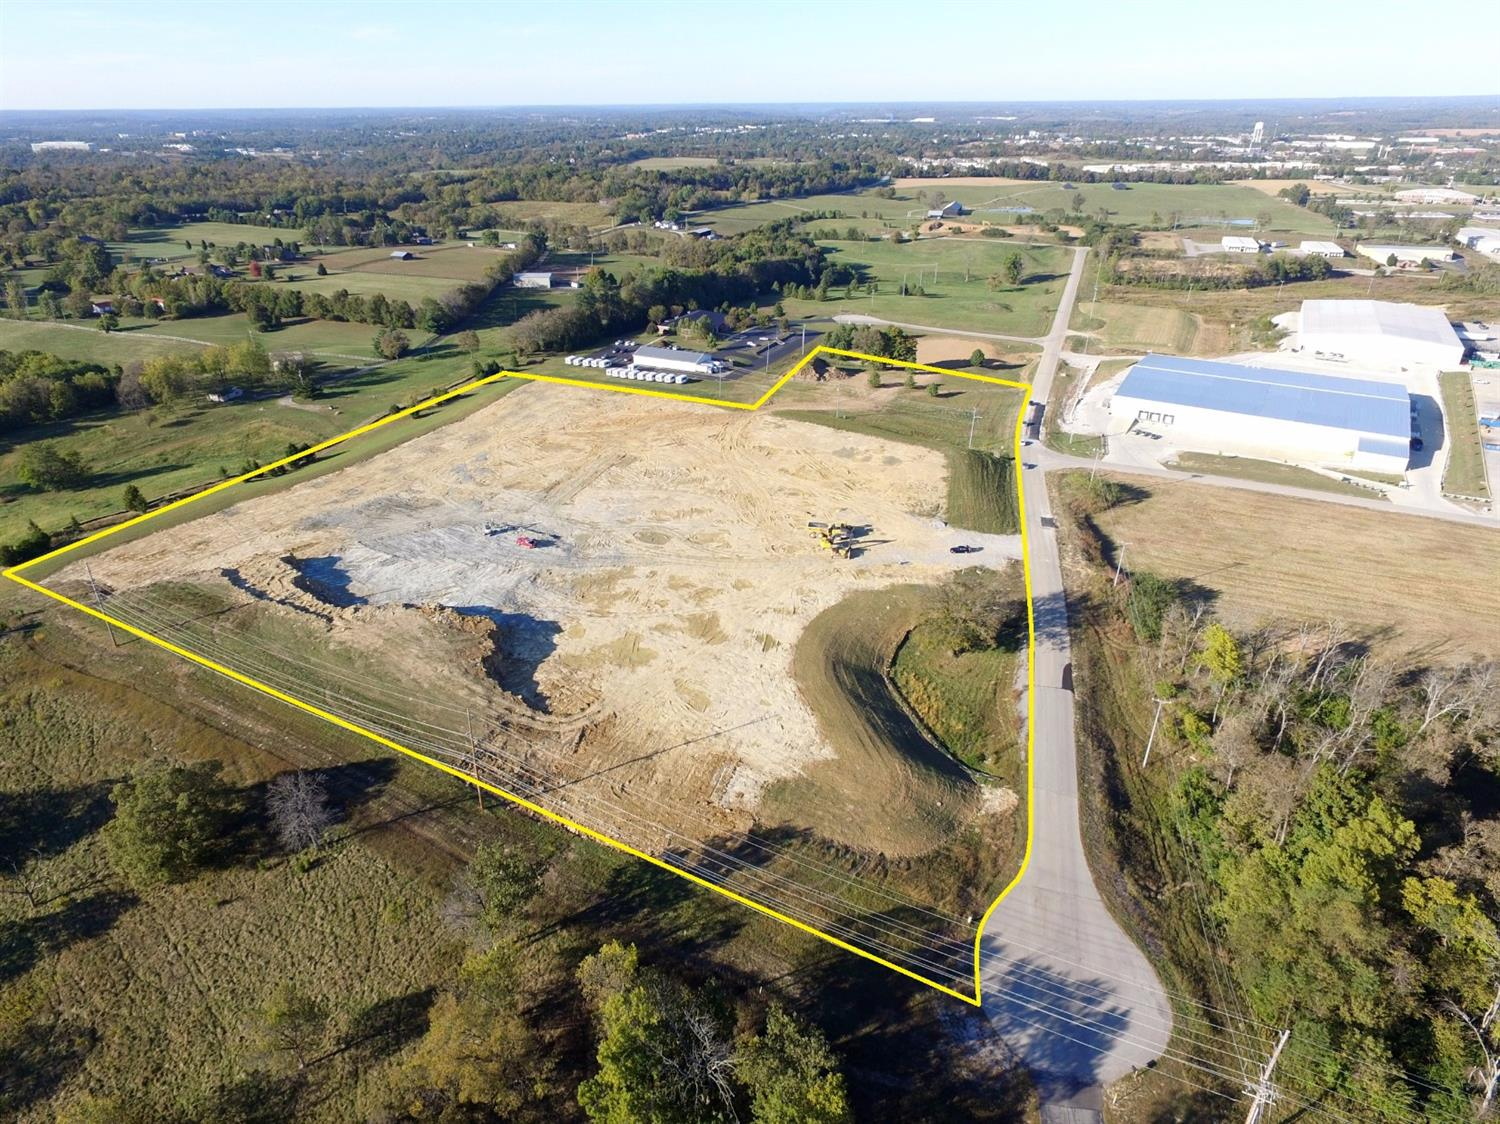 15.665%20acres%20of%20I-1%20land%20for%20sale%20in%20the%20Franklin%20Industrial%20Park.%20%20Can%20subdivide%20(2%20acre%20minimum)%20$85,000%20per%20acre.%20Combined%20with%20125%20Founders%20Dr%20across%20the%20street,%20total%20of%2029.69%20acres%20available.%20Located%201%20mile%20from%20I-64%20and%20US%2060.%20%20Build%20to%20suit%20option%20available.